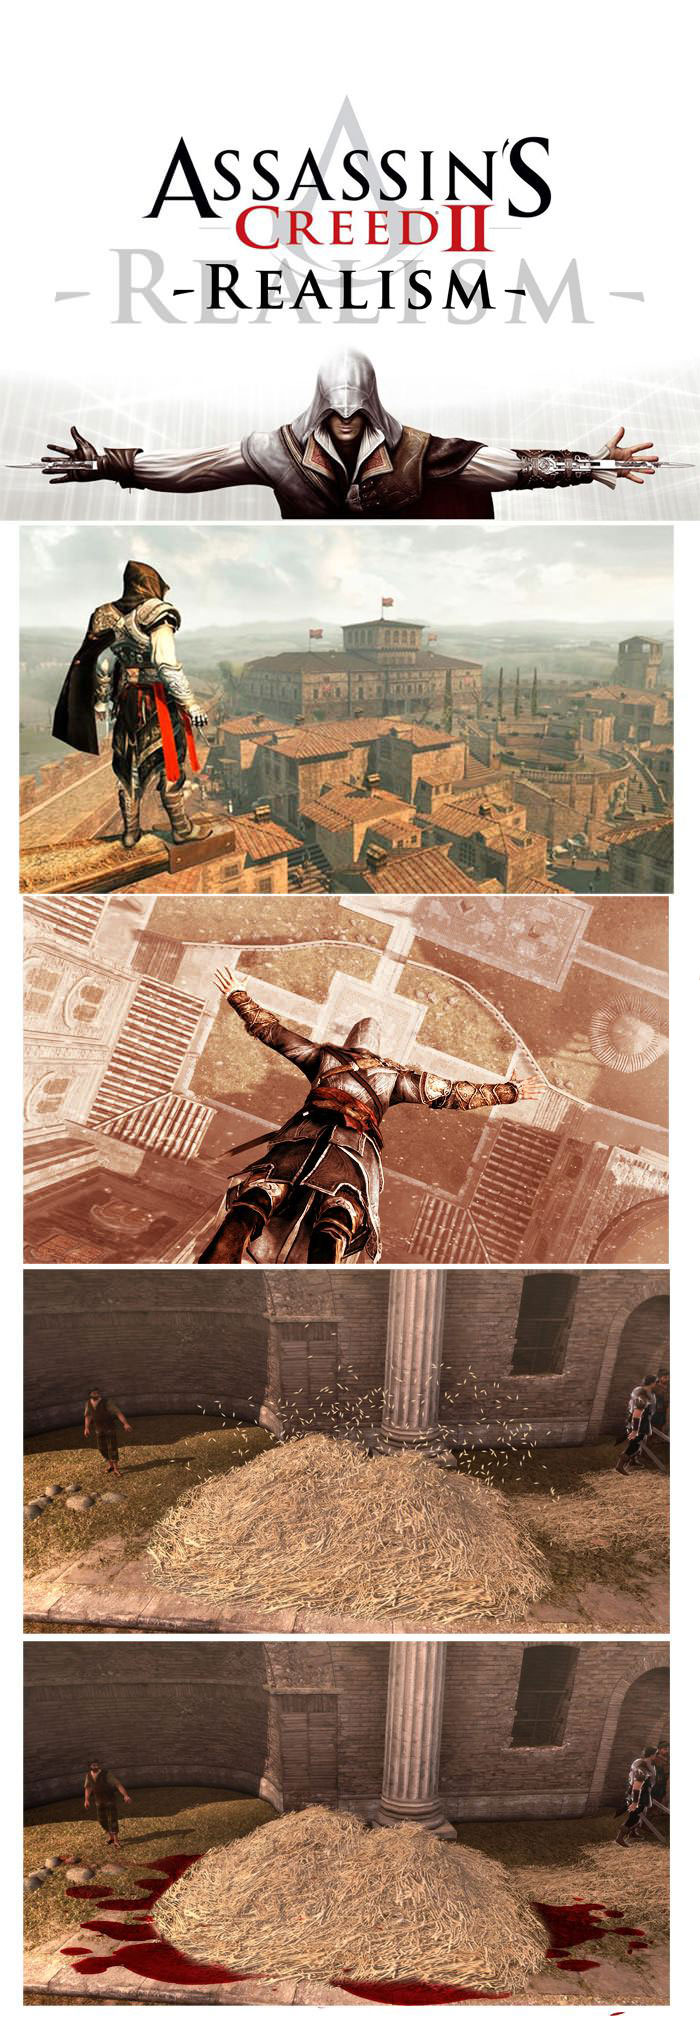 assassin's creed irl, church top leap, hay, blood